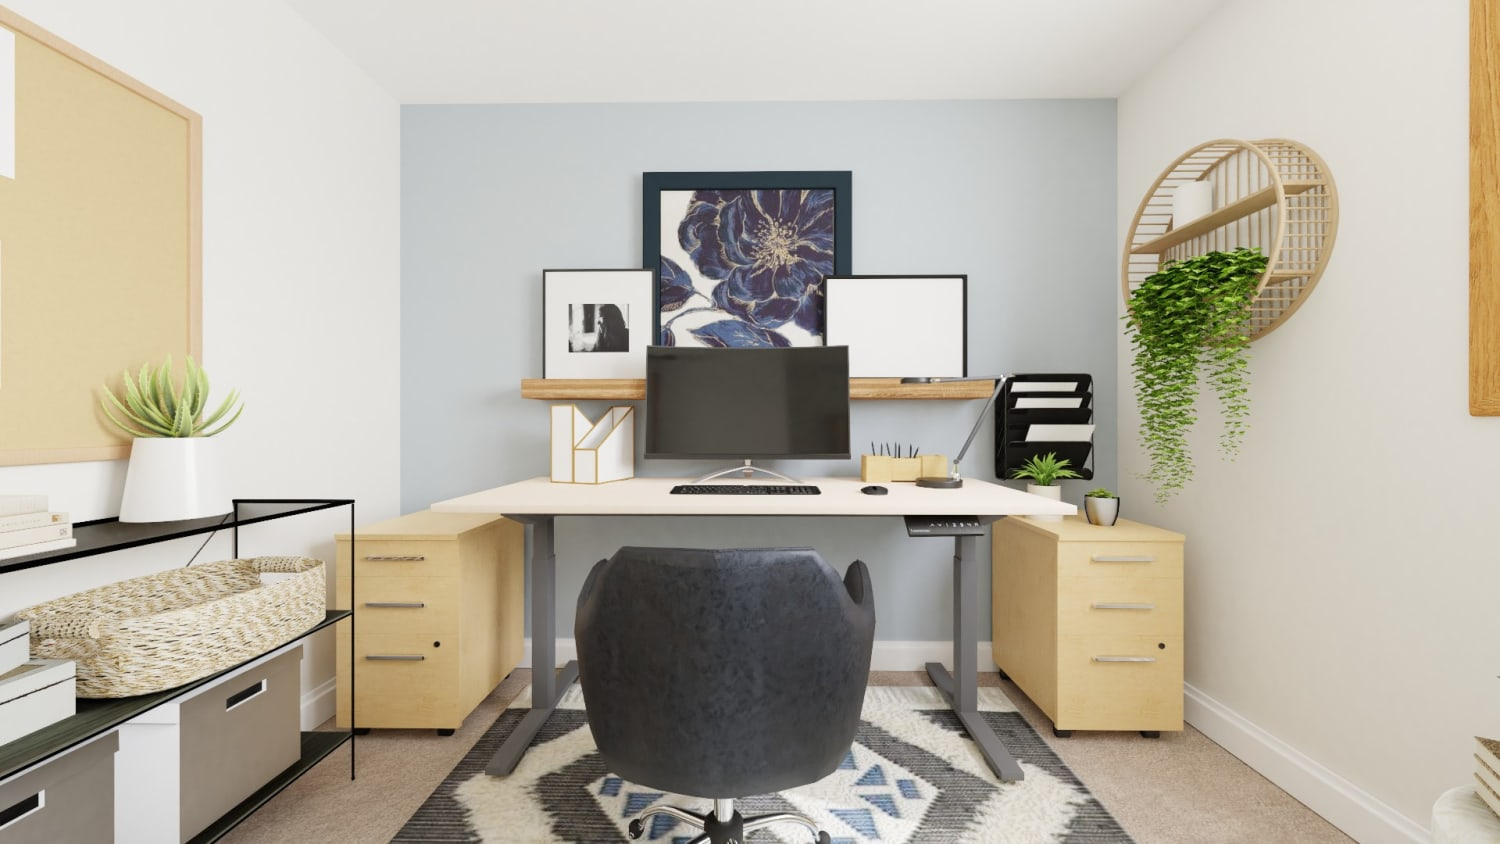 Statement Art: Boho Eclectic Home Office Design By Spacejoy